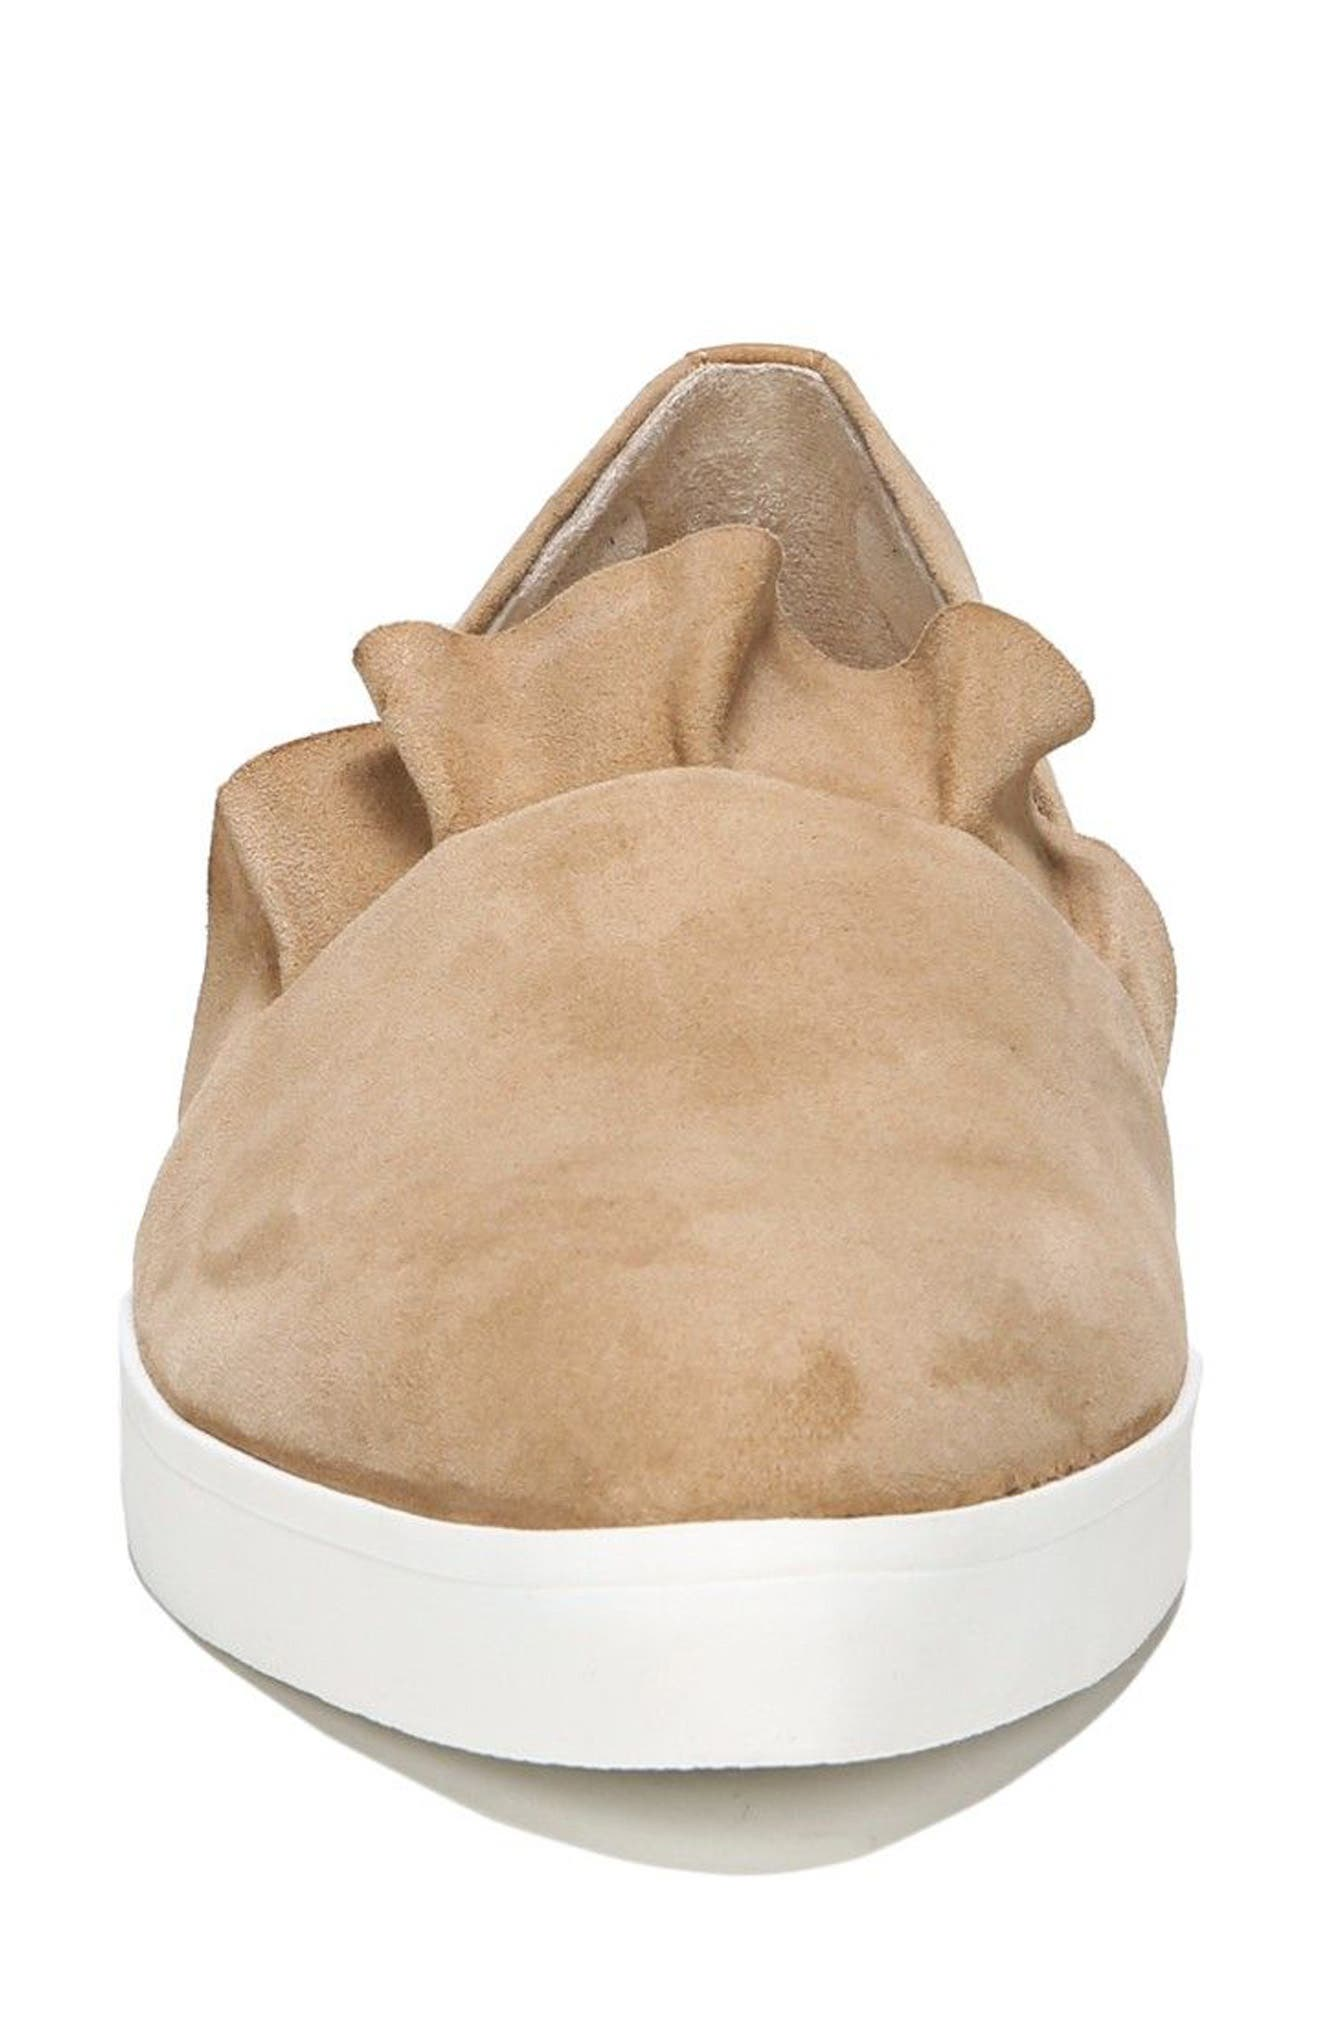 Vienna Slip-On Sneaker,                             Alternate thumbnail 4, color,                             Nude Suede